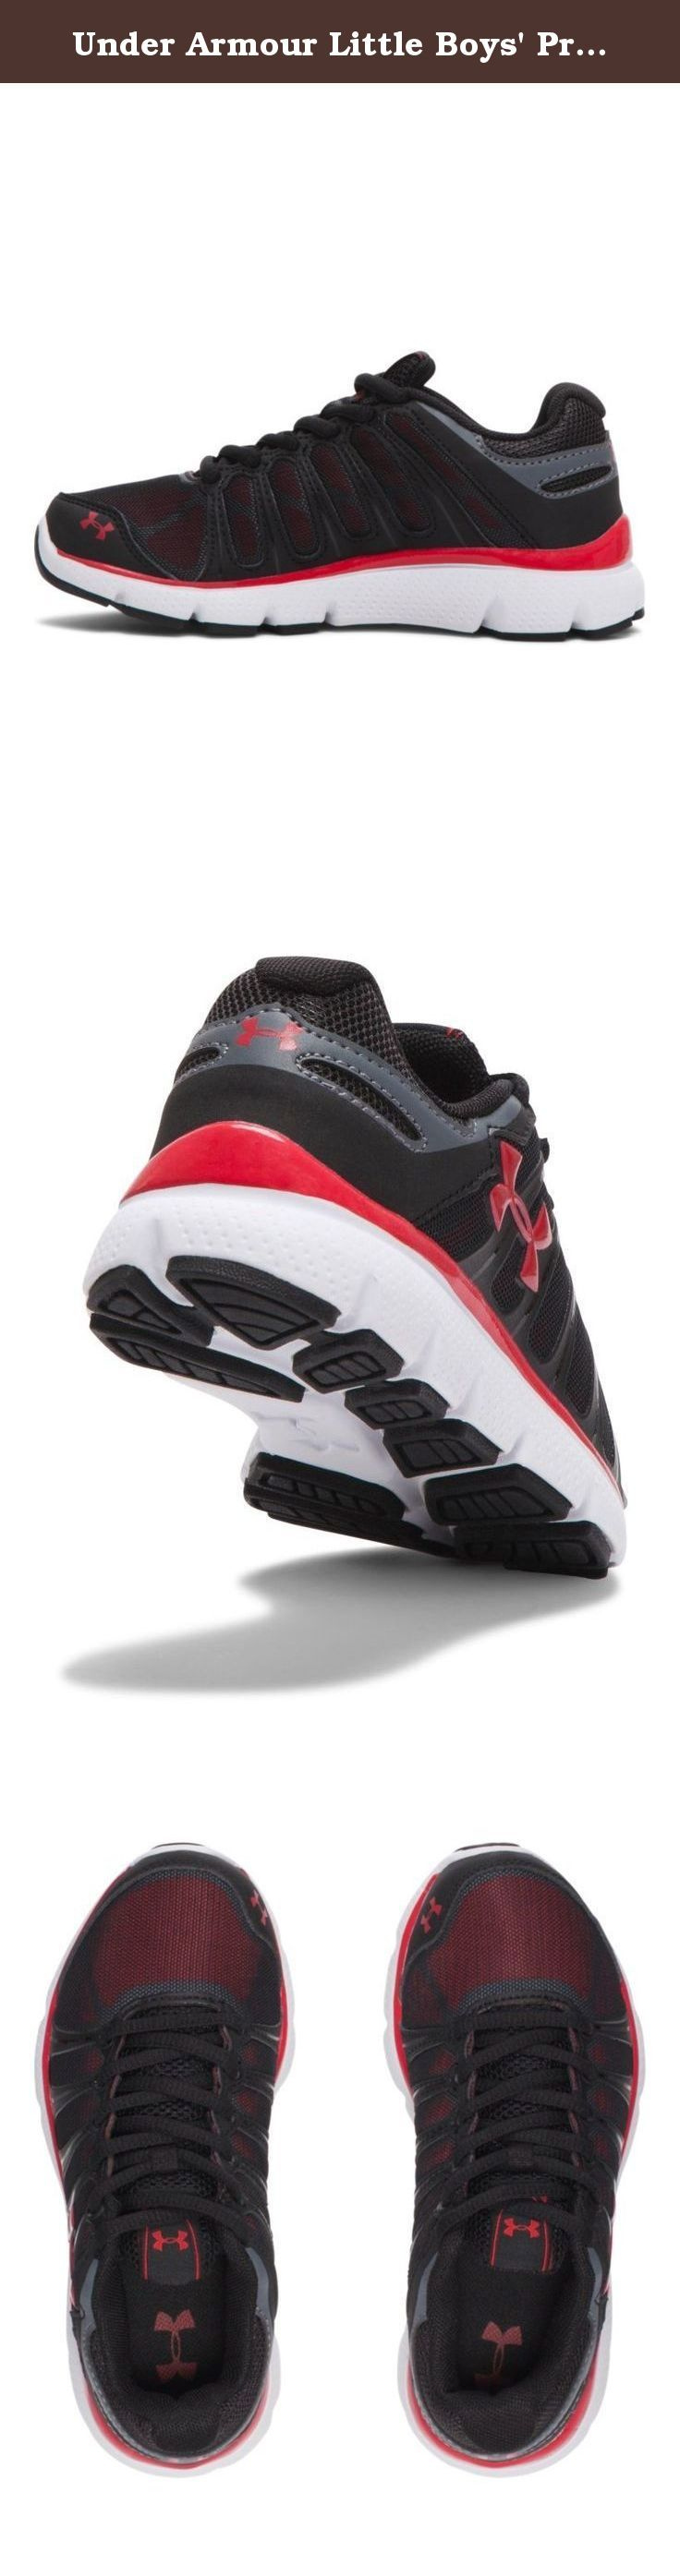 Under Armour Little Boys' Pre-School UA Pulse II Shoes 1 Black.